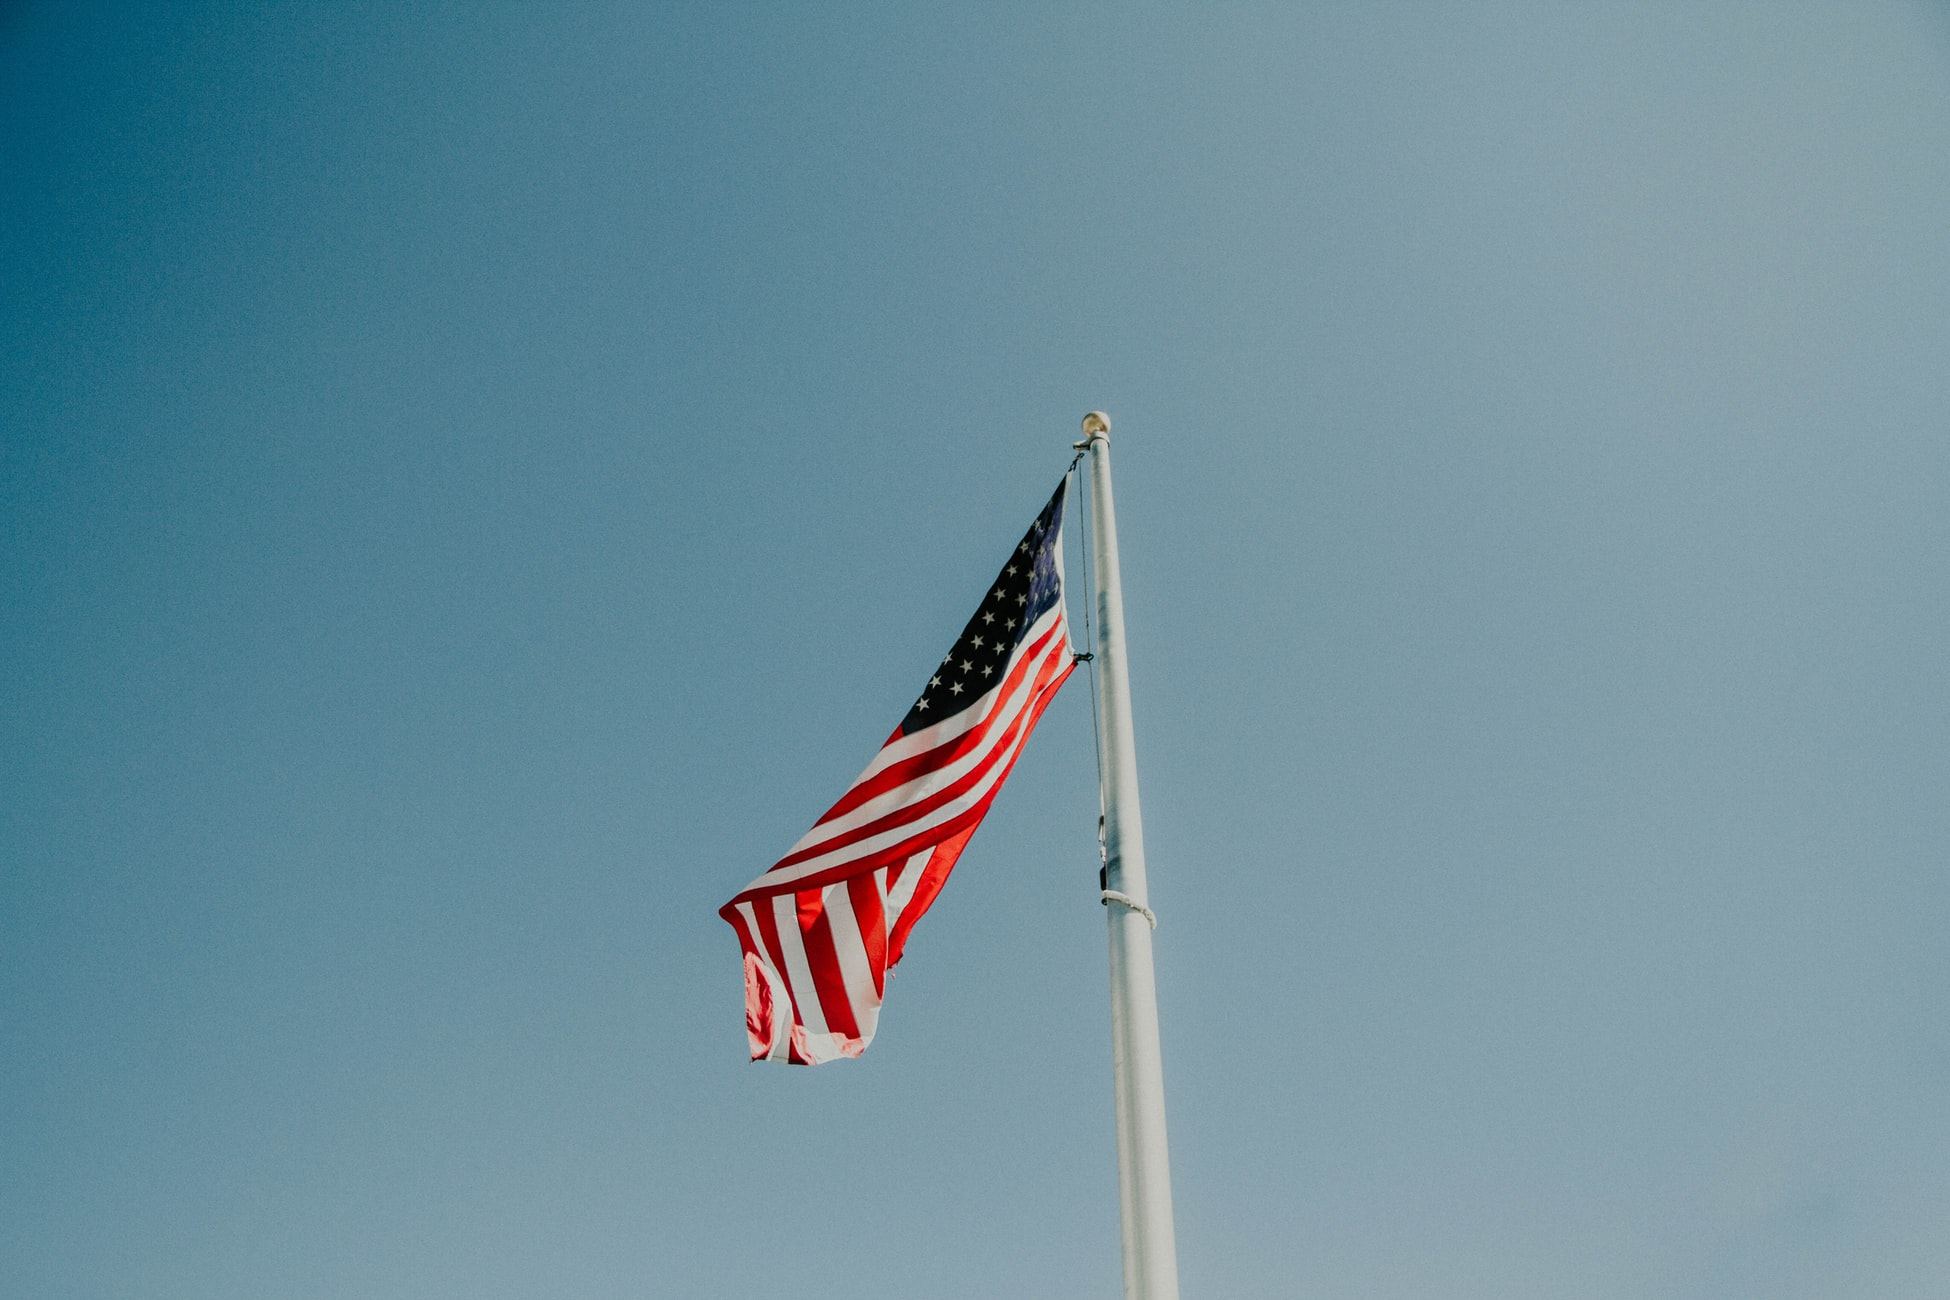 EB-5 Program as a Stimulus for the United States Economy Post COVID-19